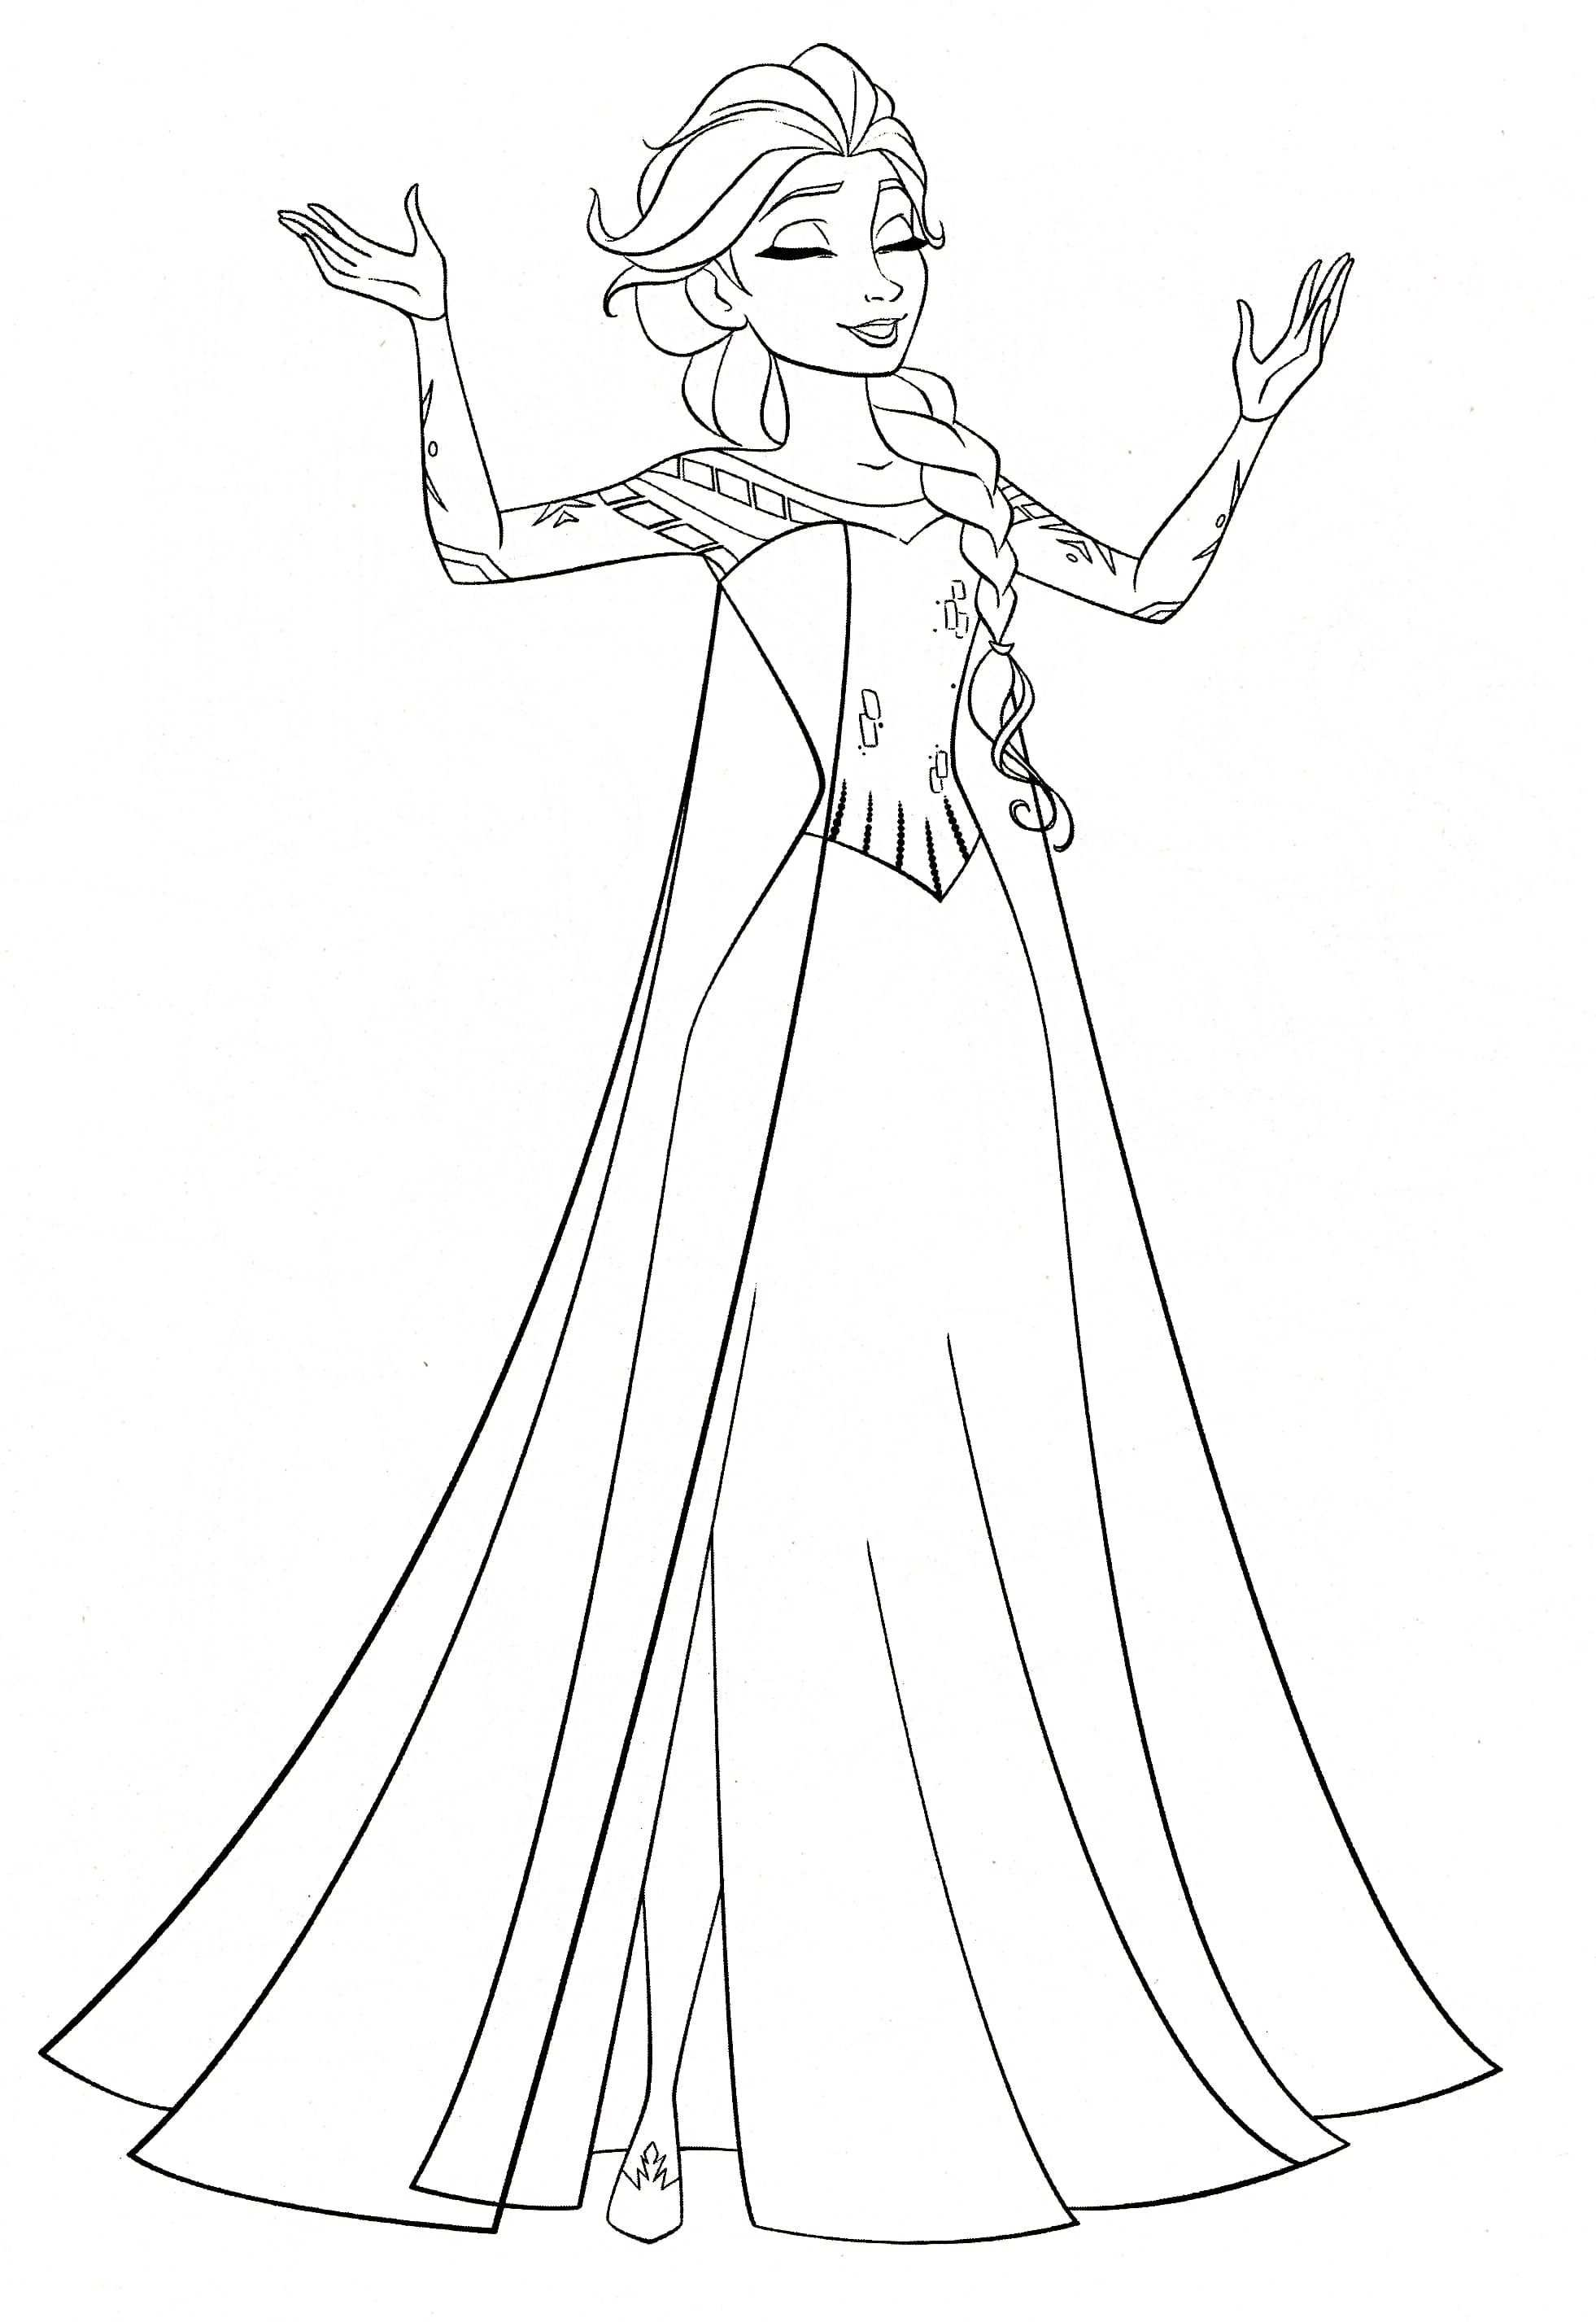 Free Elsa Coloring Pages In 2020 Elsa Coloring Pages